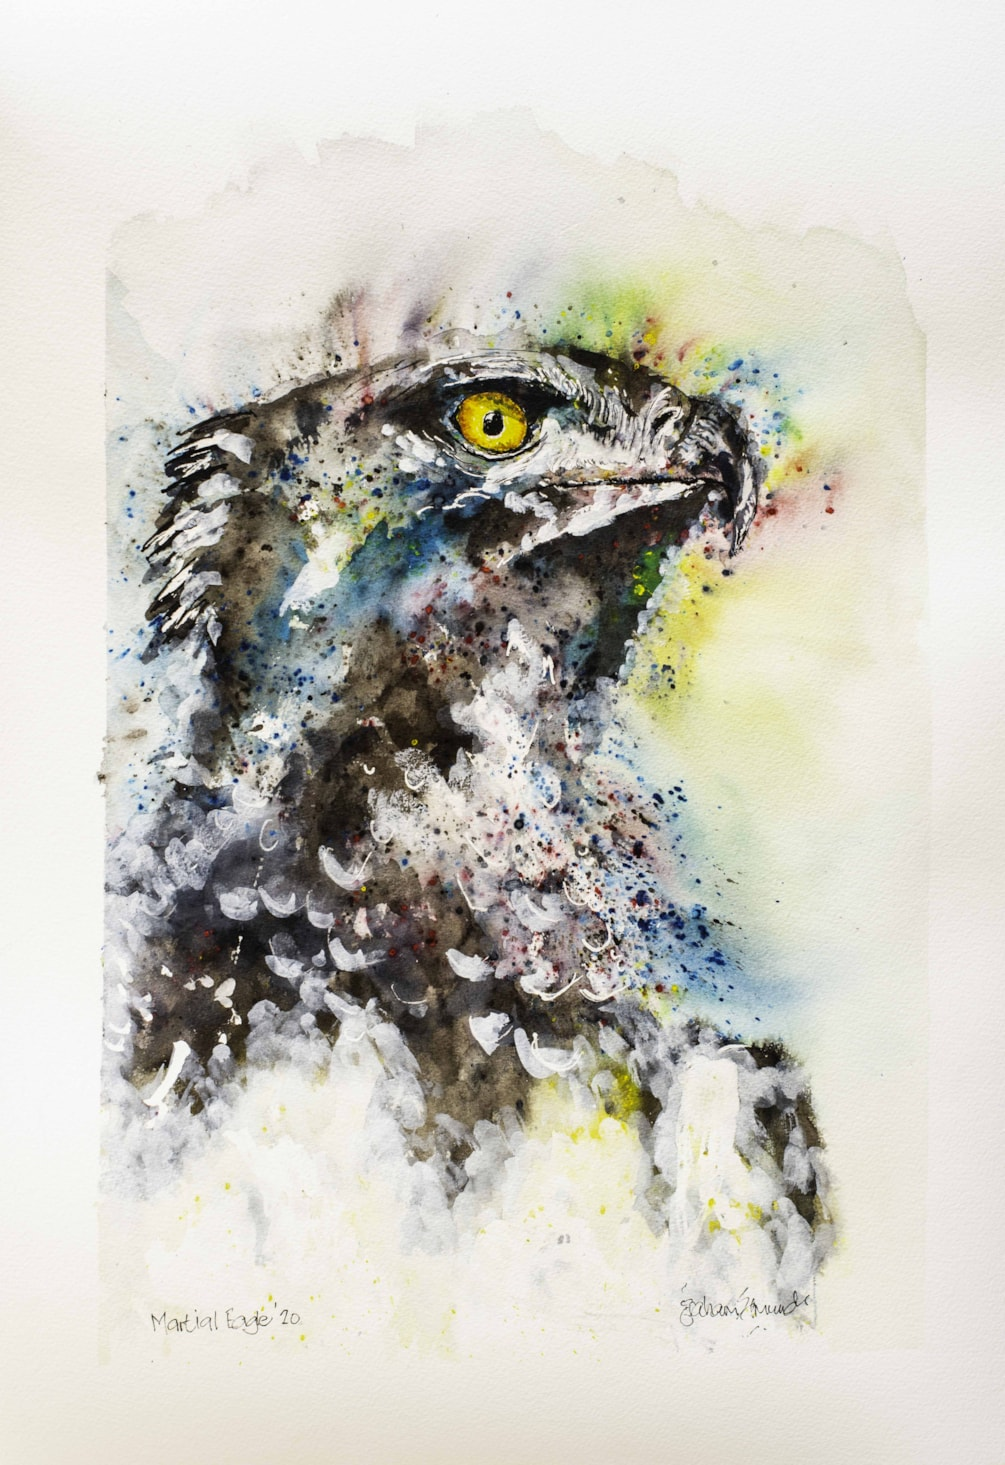 Martial Eagle '20 signed (1 of 1)